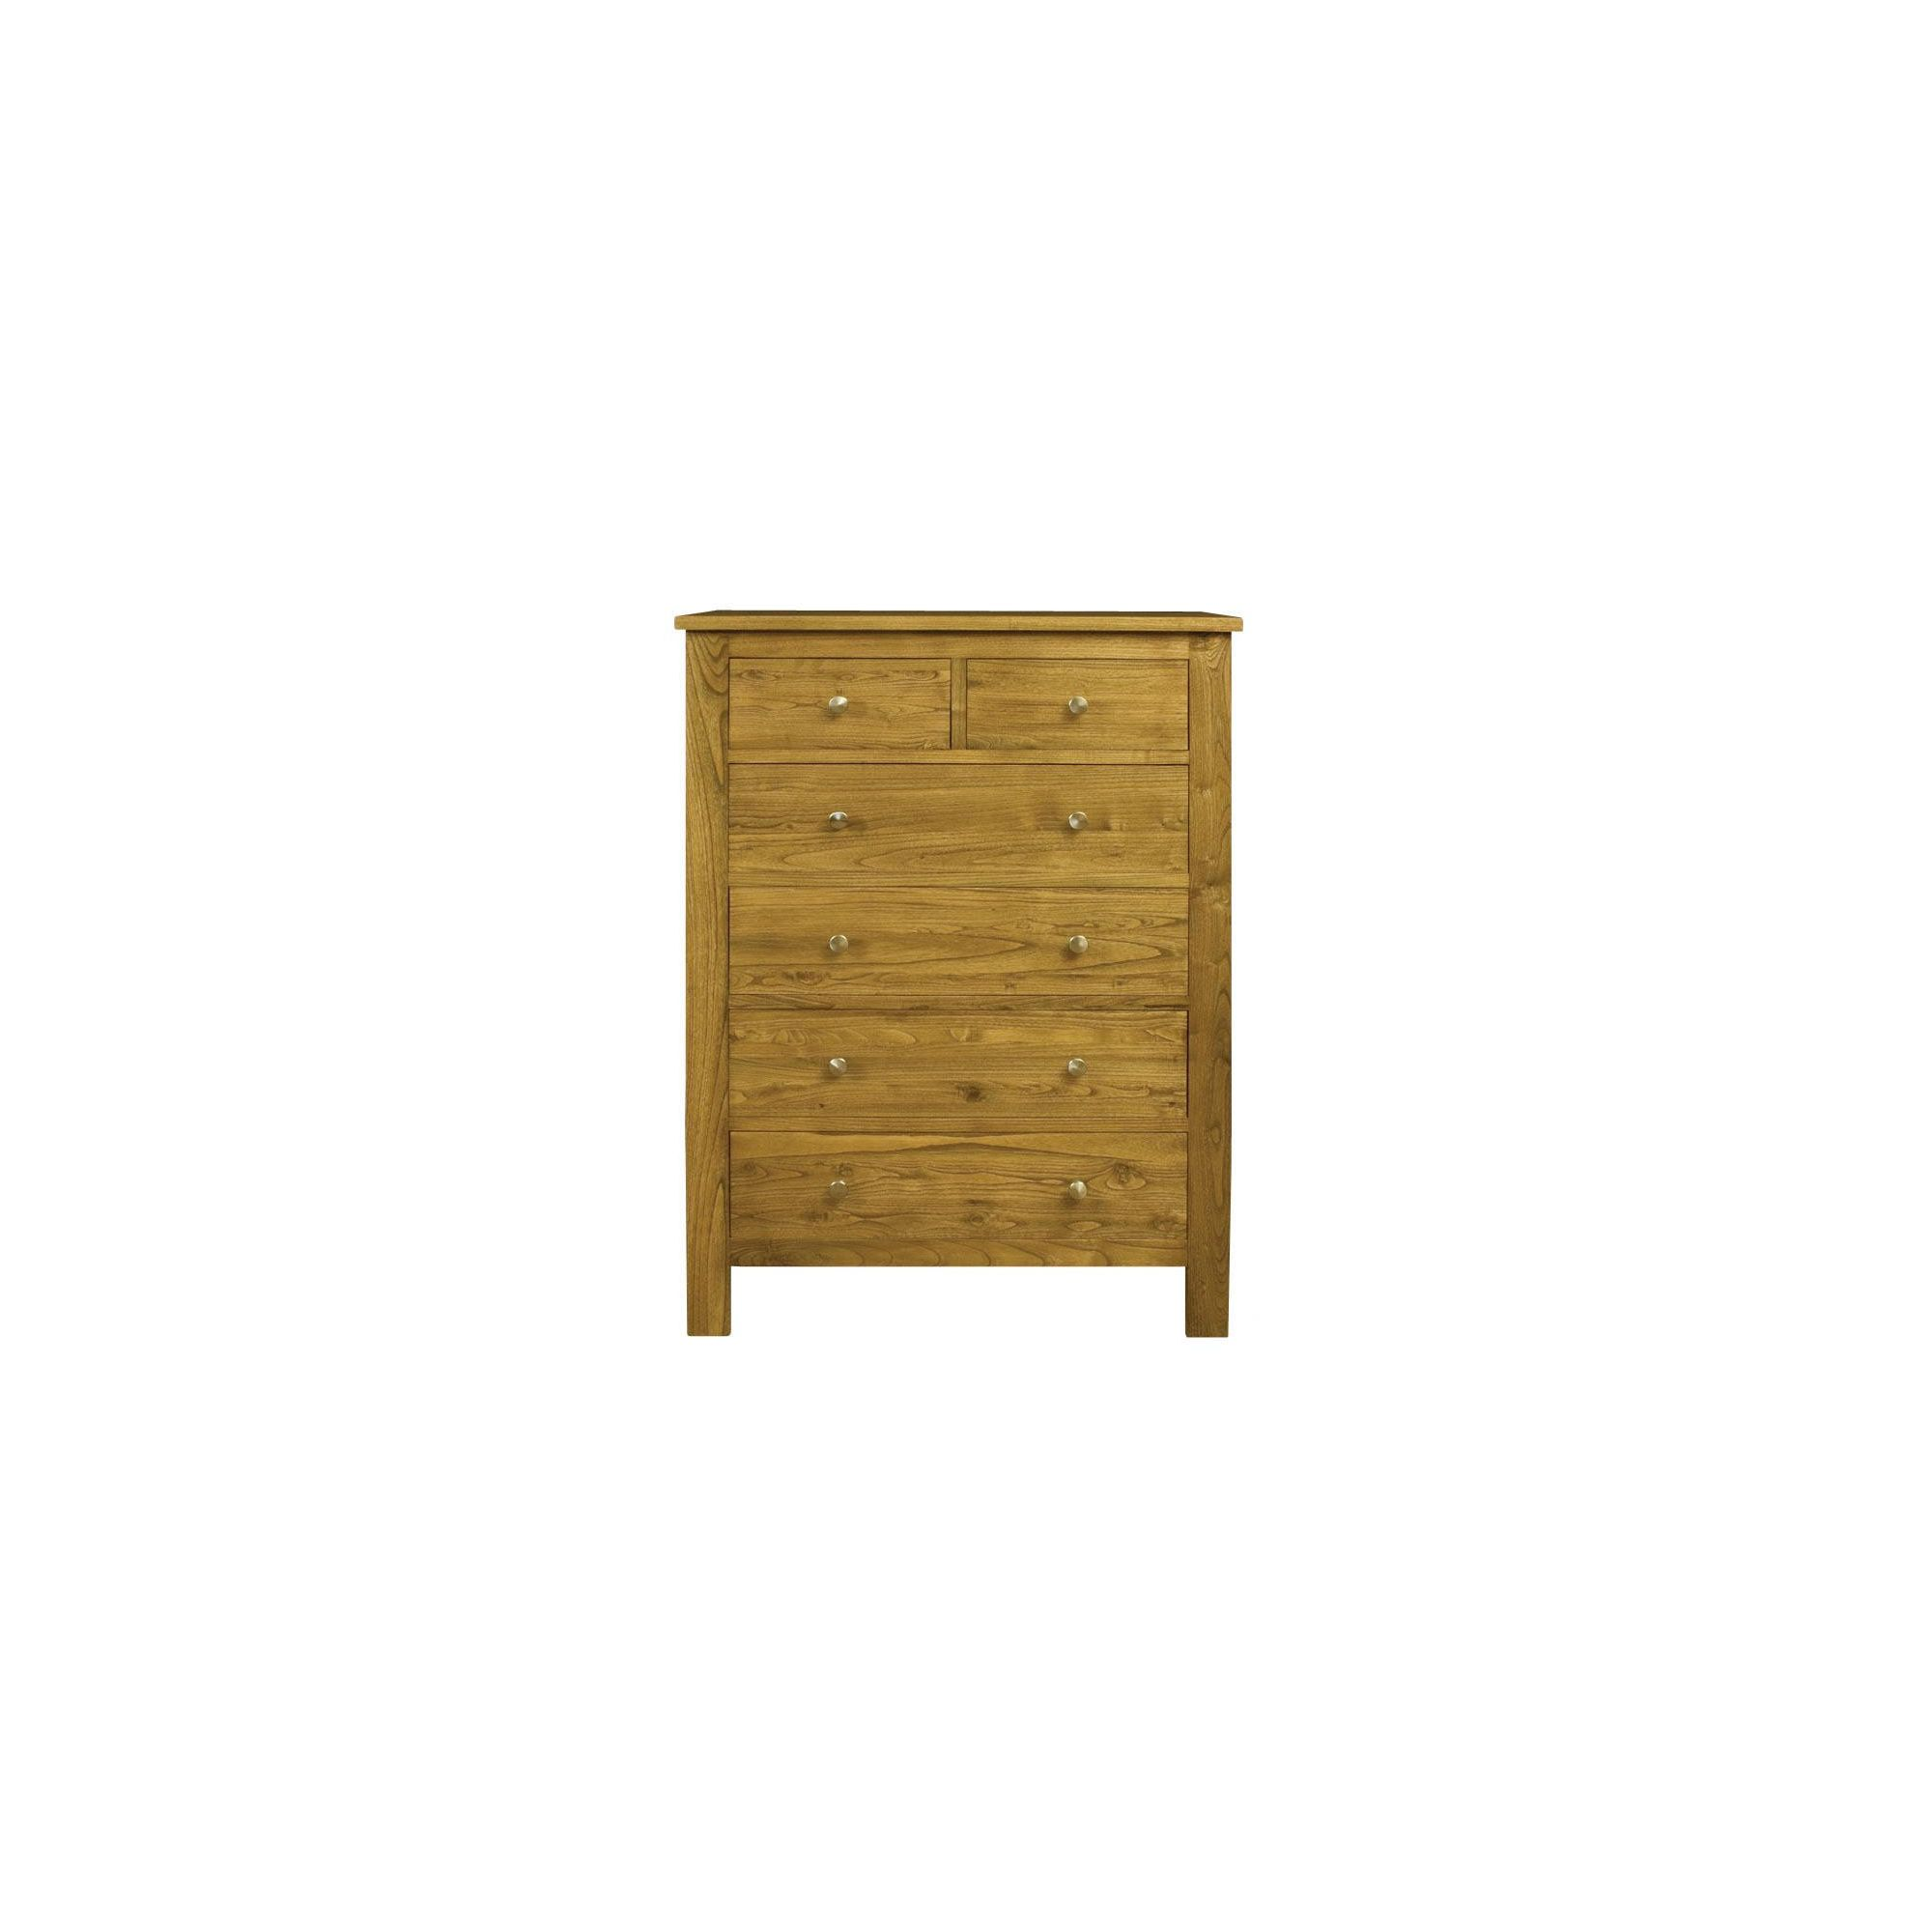 Alterton Furniture Madison 2 Over 4 Drawer Chest at Tesco Direct